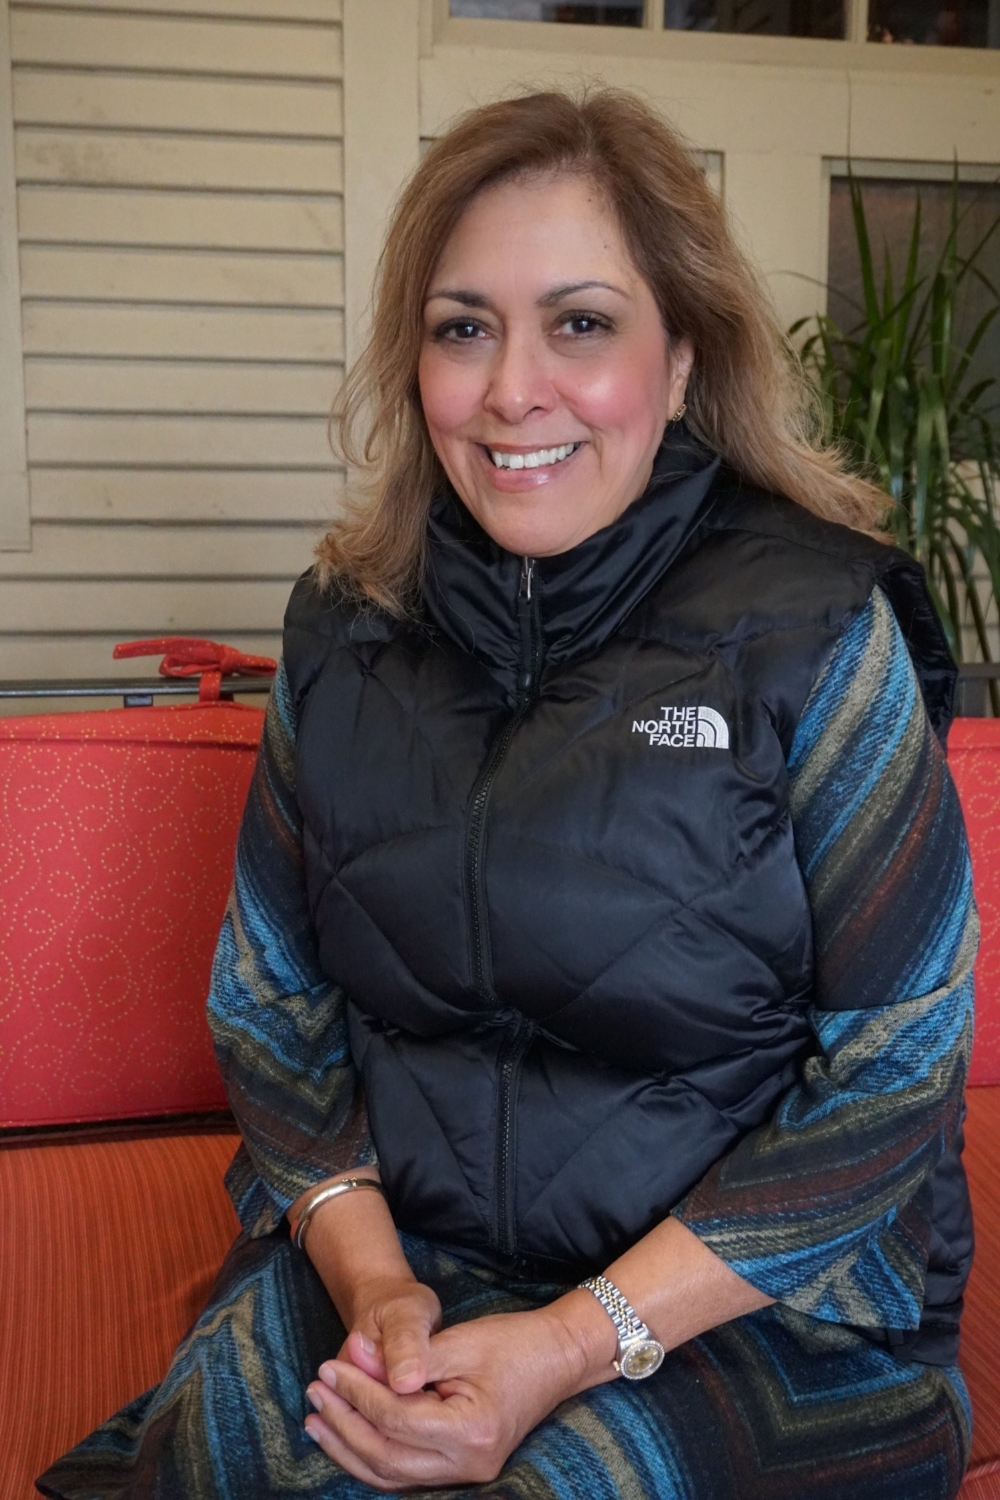 Pat Gonzaba   Pat has worked at The Wash Tub Boutique for seven years and loves the home décor. She is all about beautiful frames, lighting, and furniture.   Favorite Brand Right Now:   Caren hand and body treatment